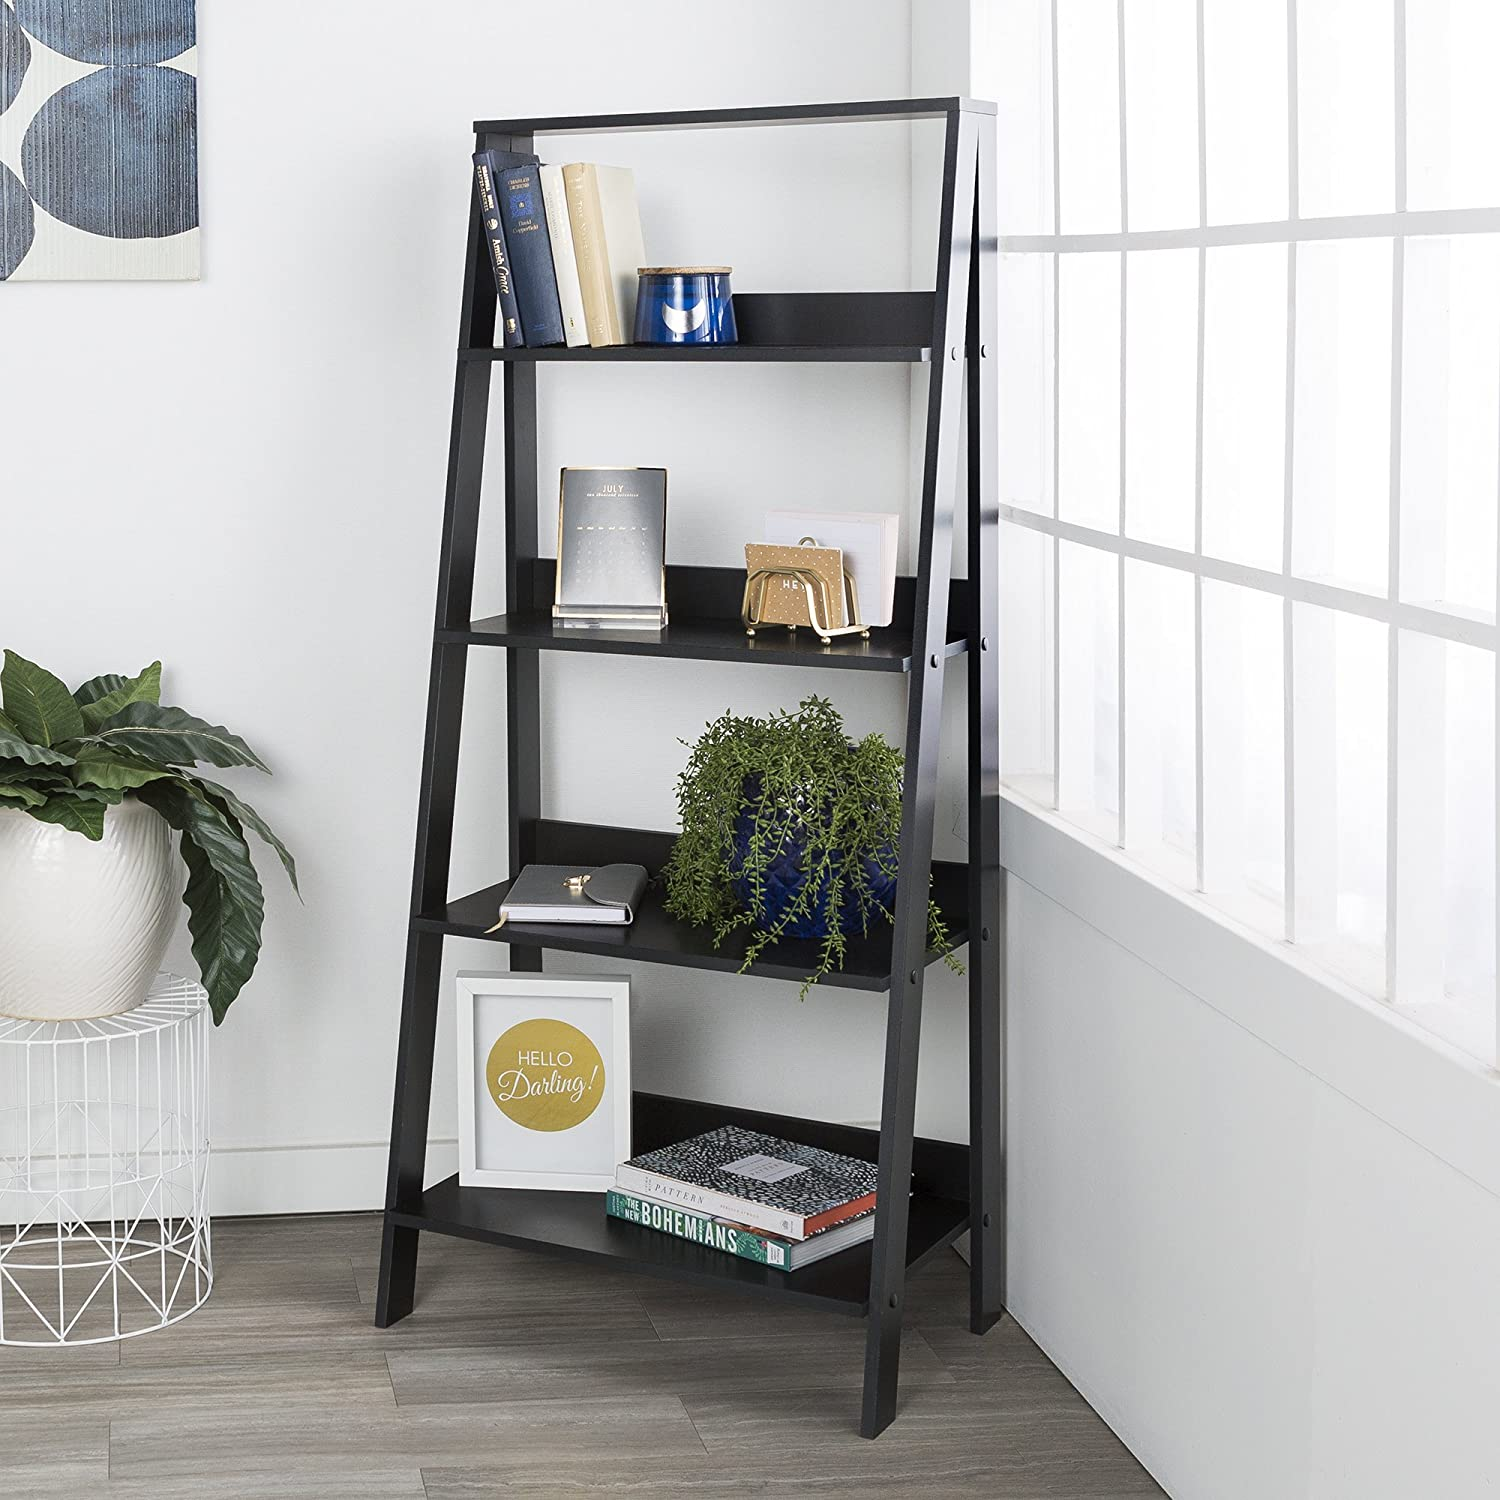 WE Furniture 55 Wood Ladder Bookshelf - Black AZS55LDBL